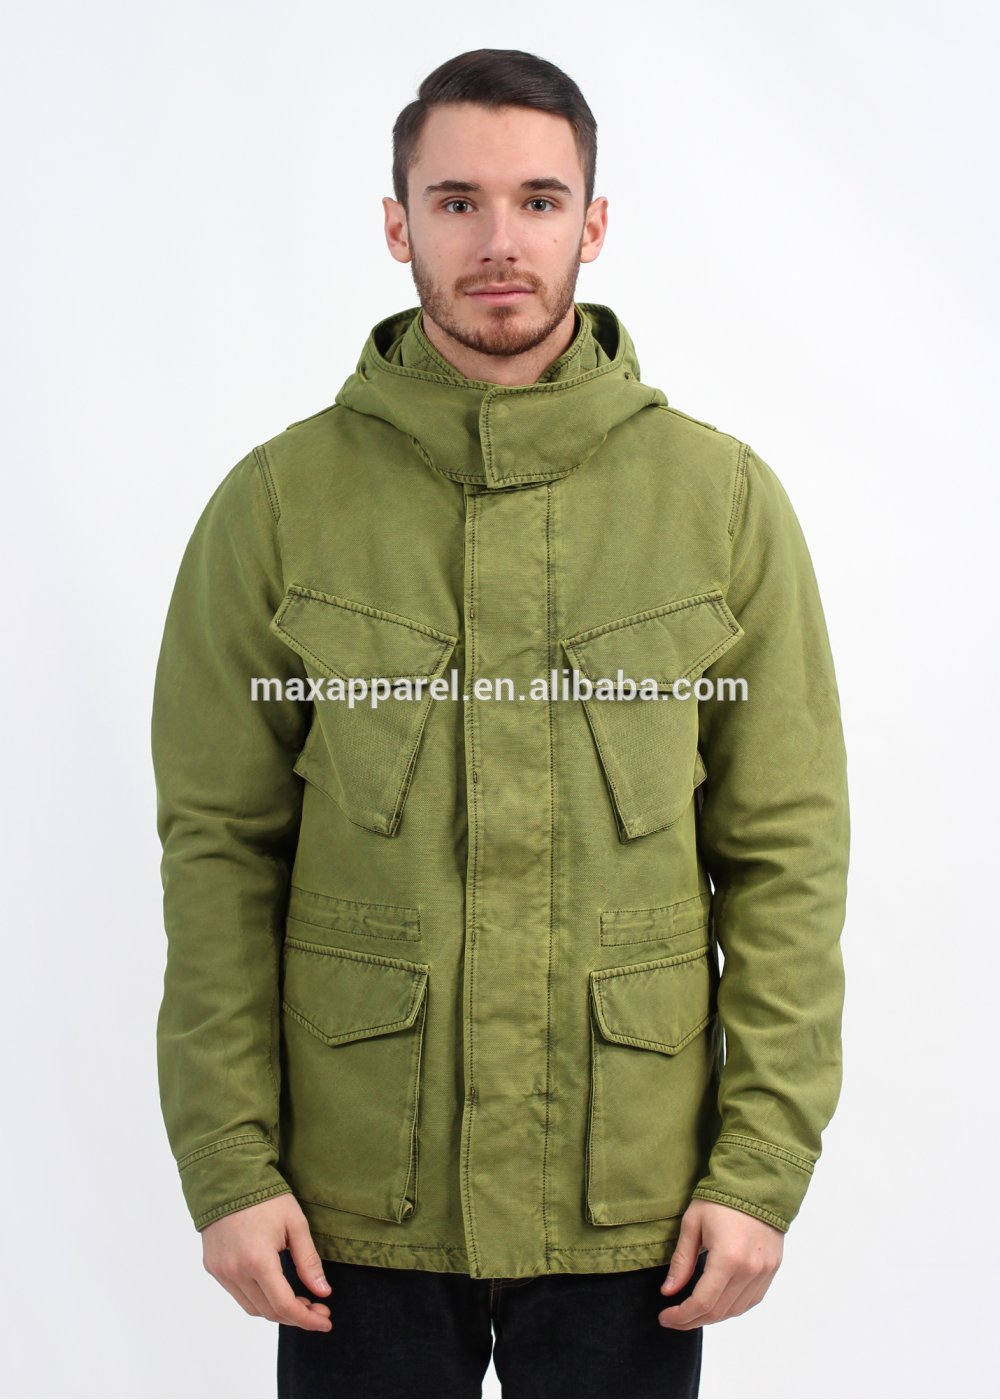 2015 Custom Made EU Fashion Mens Cotton/ Nylon Blend Field Jacket ,Multi Pockets Parka JacketWinter Parka Jacket